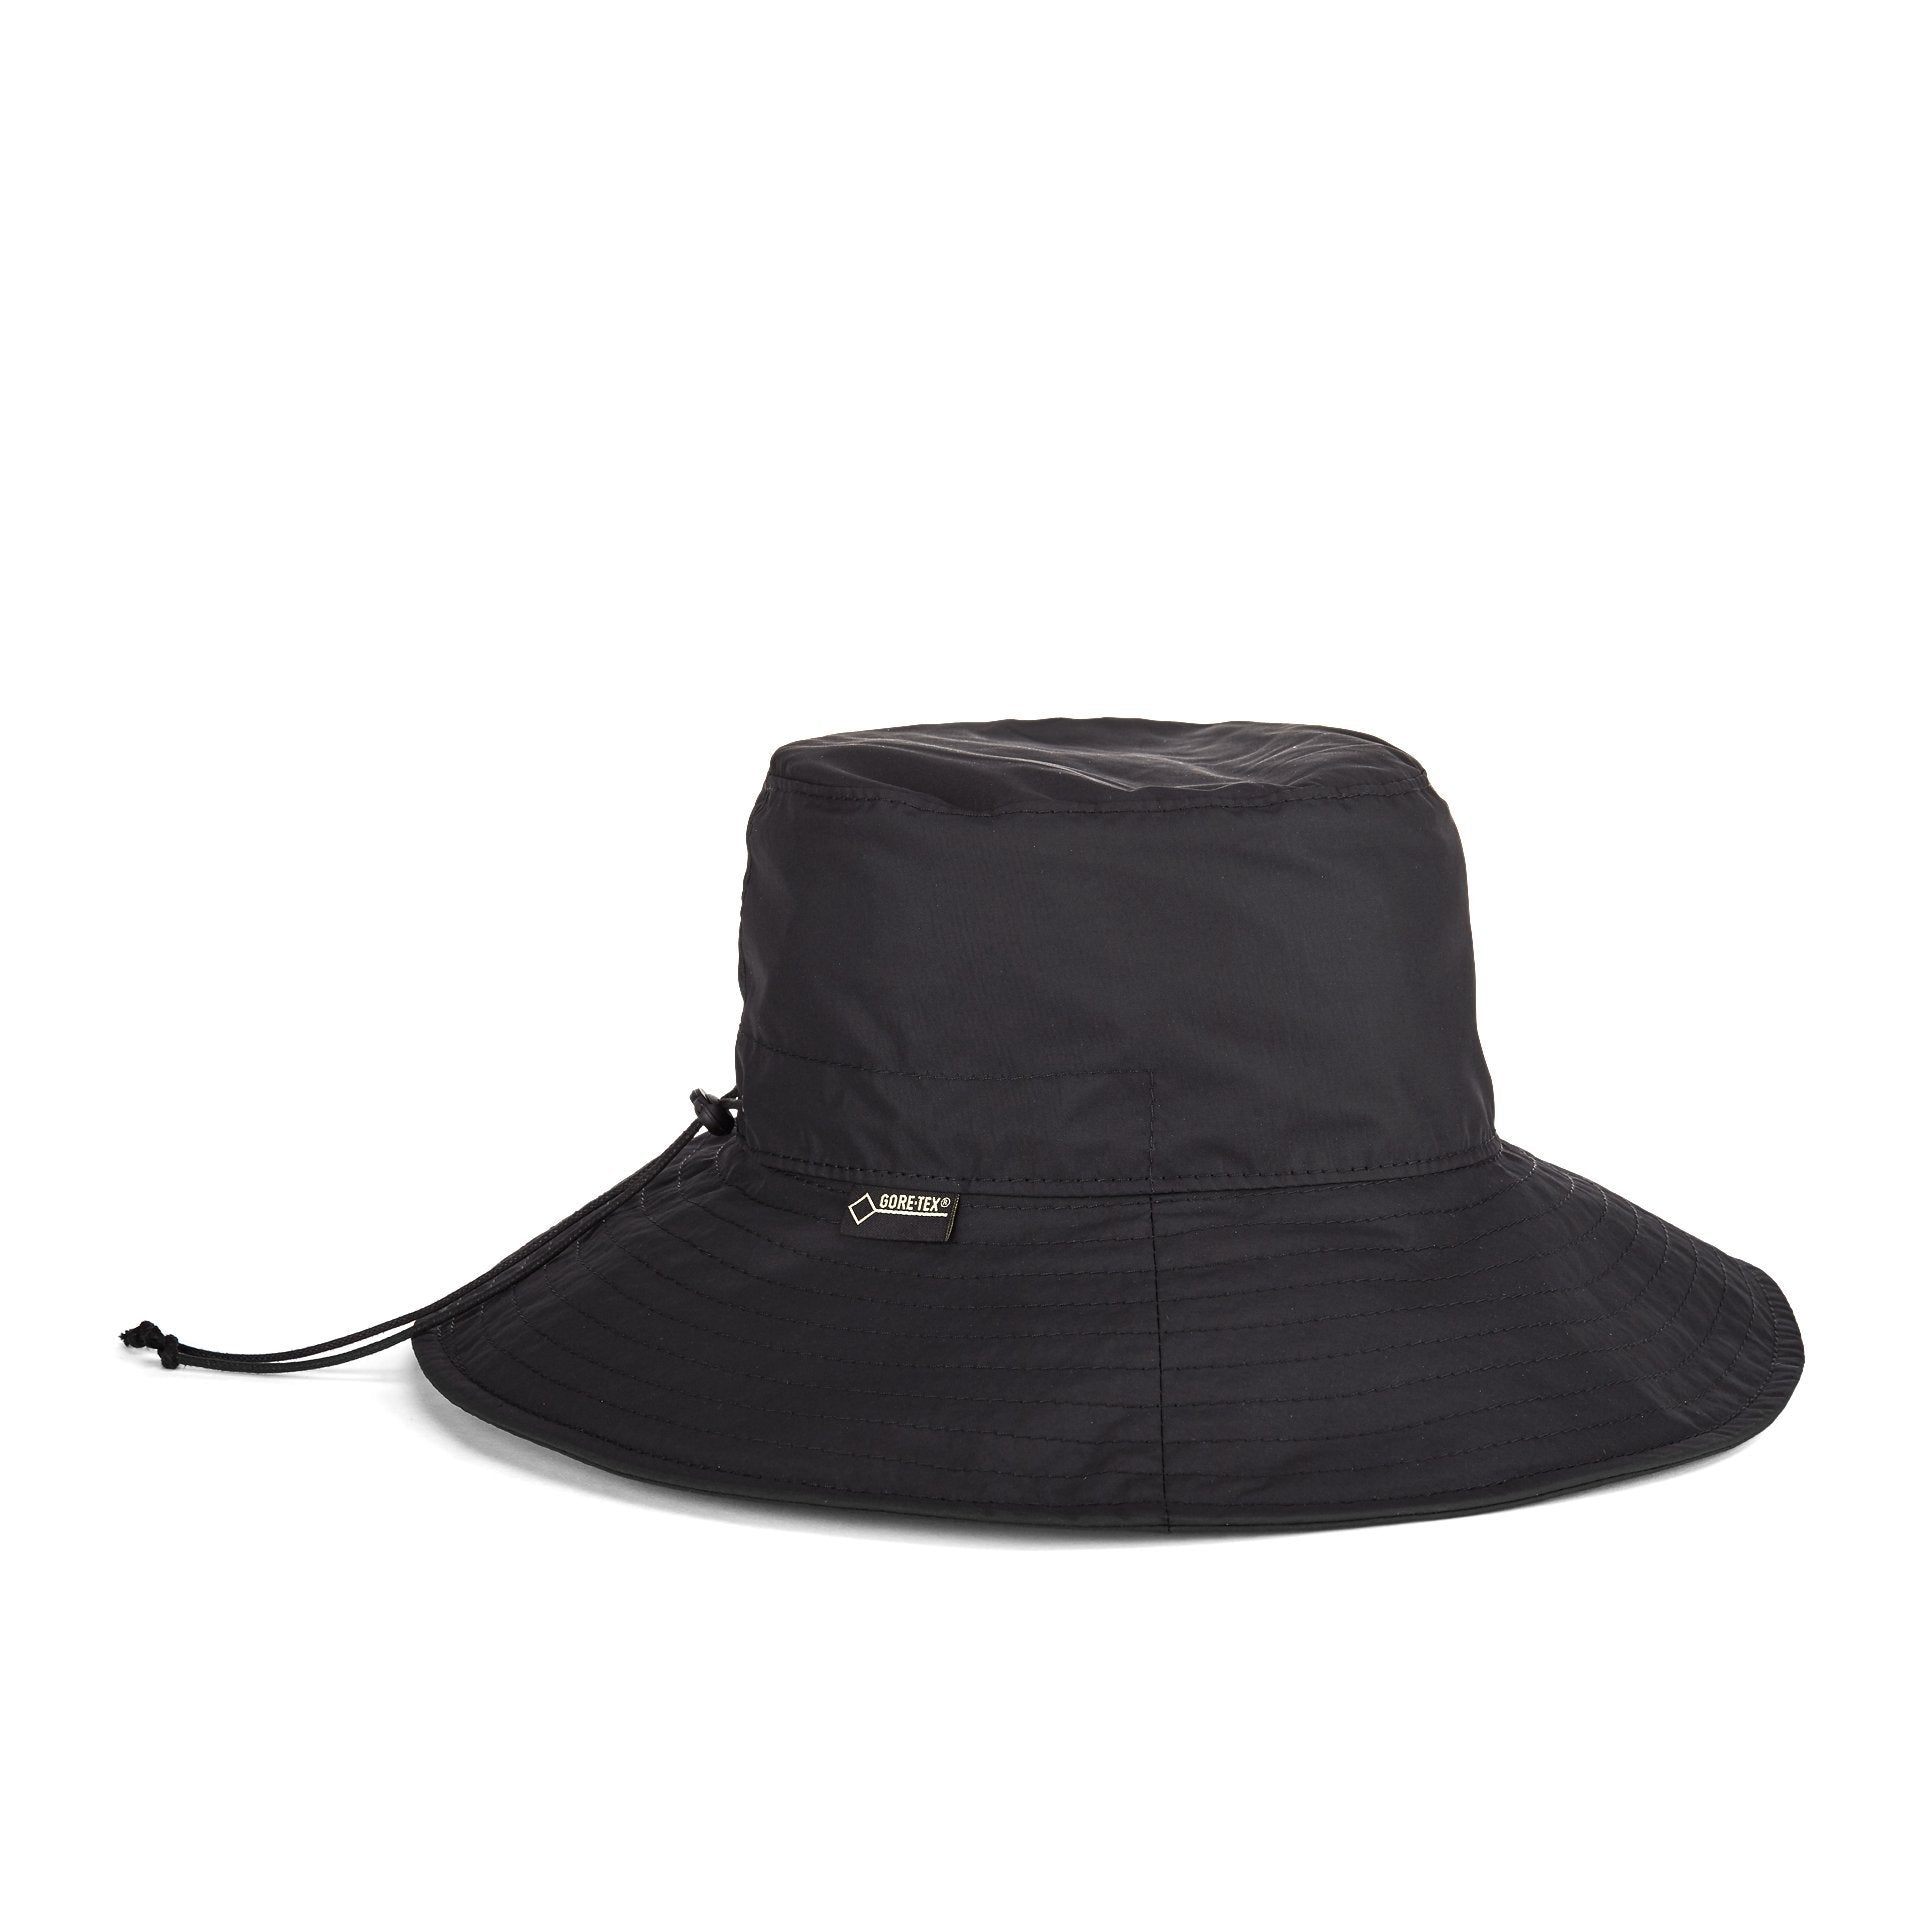 Gore-tex brim rain hat - Bakerboy, Baseball and Bucket Hats - Lock & Co. Hatters London UK